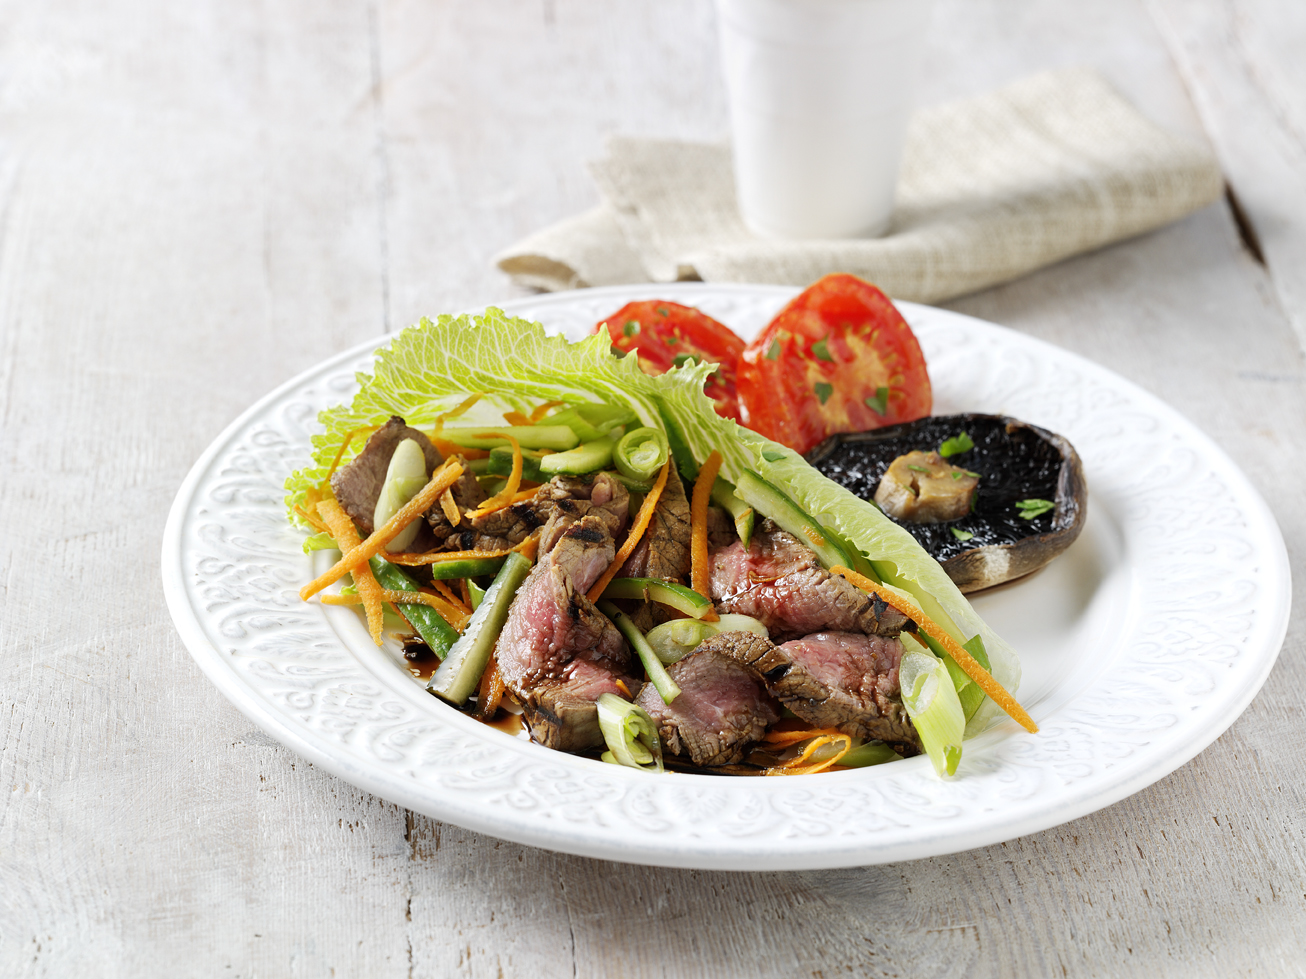 Dinner recipe: Hot beef salad